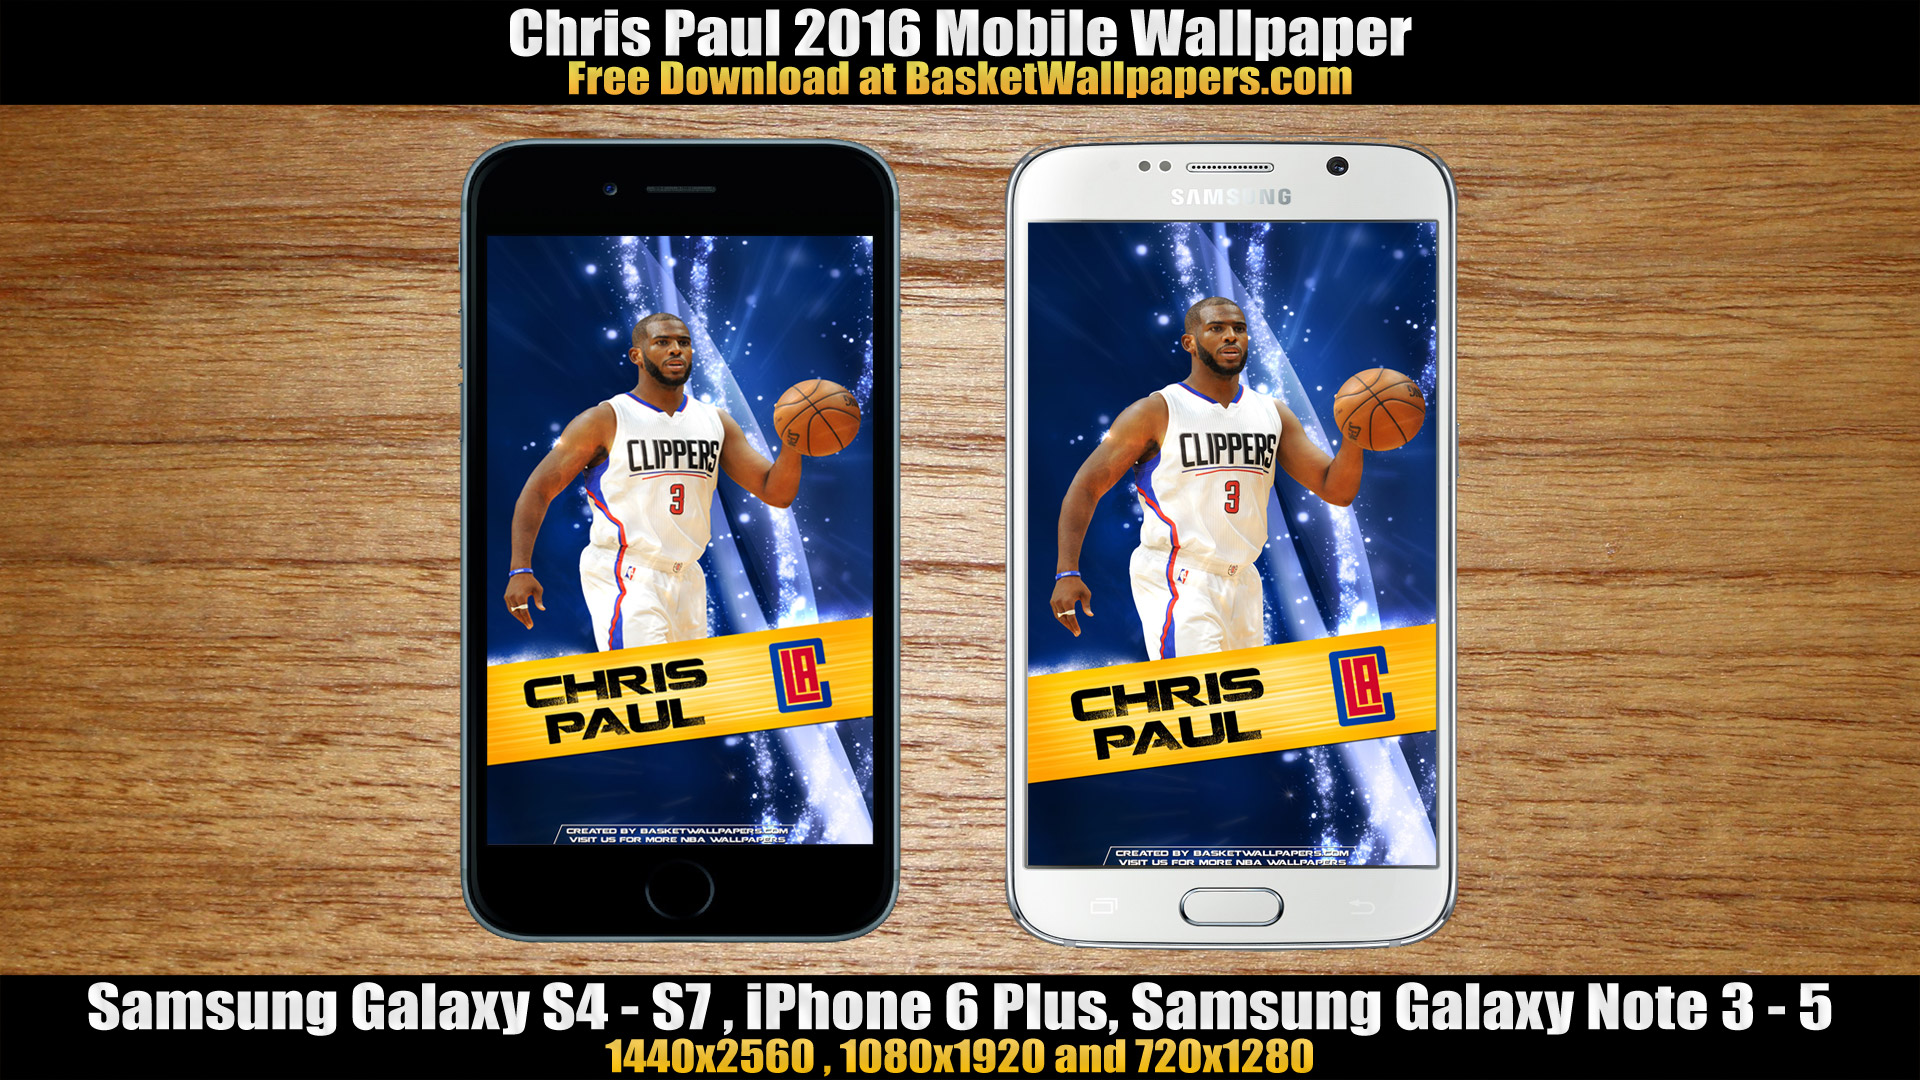 Chris Paul Los Angeles Clippers 2016 Mobile Wallpaper